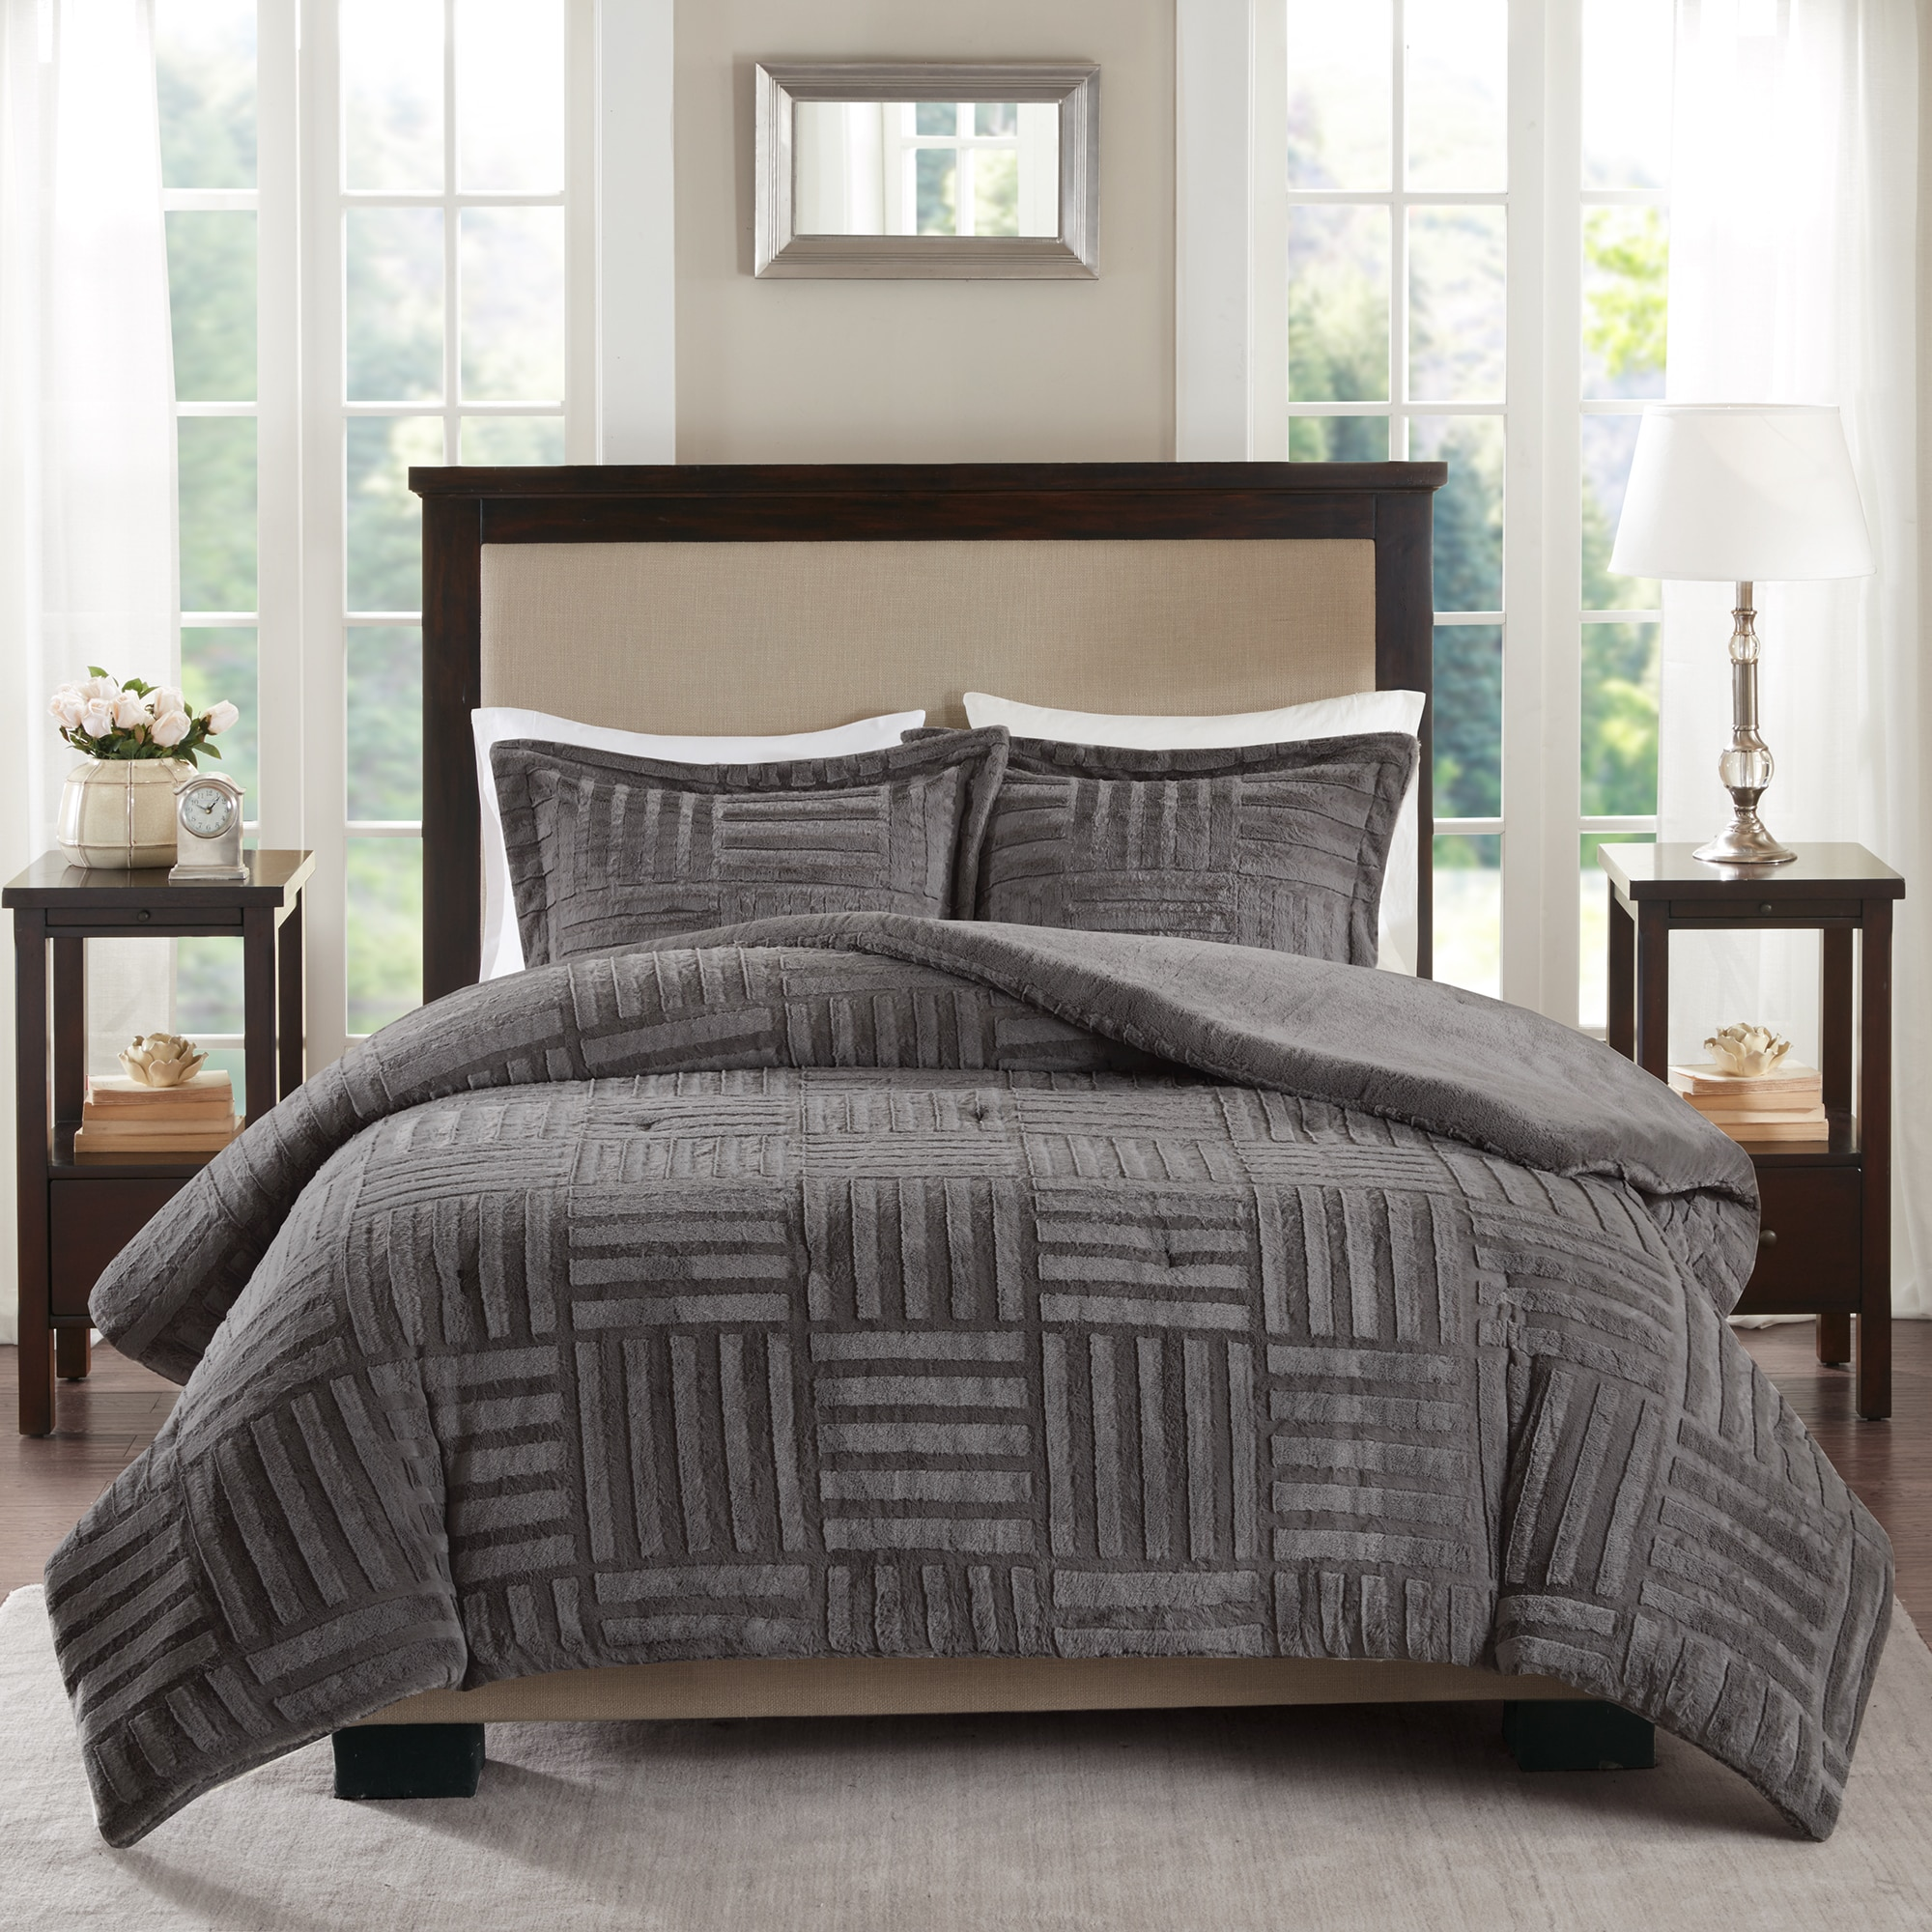 mini reviews home bath bed river woolrich pdx set reversible comforter white alternative classics wayfair down